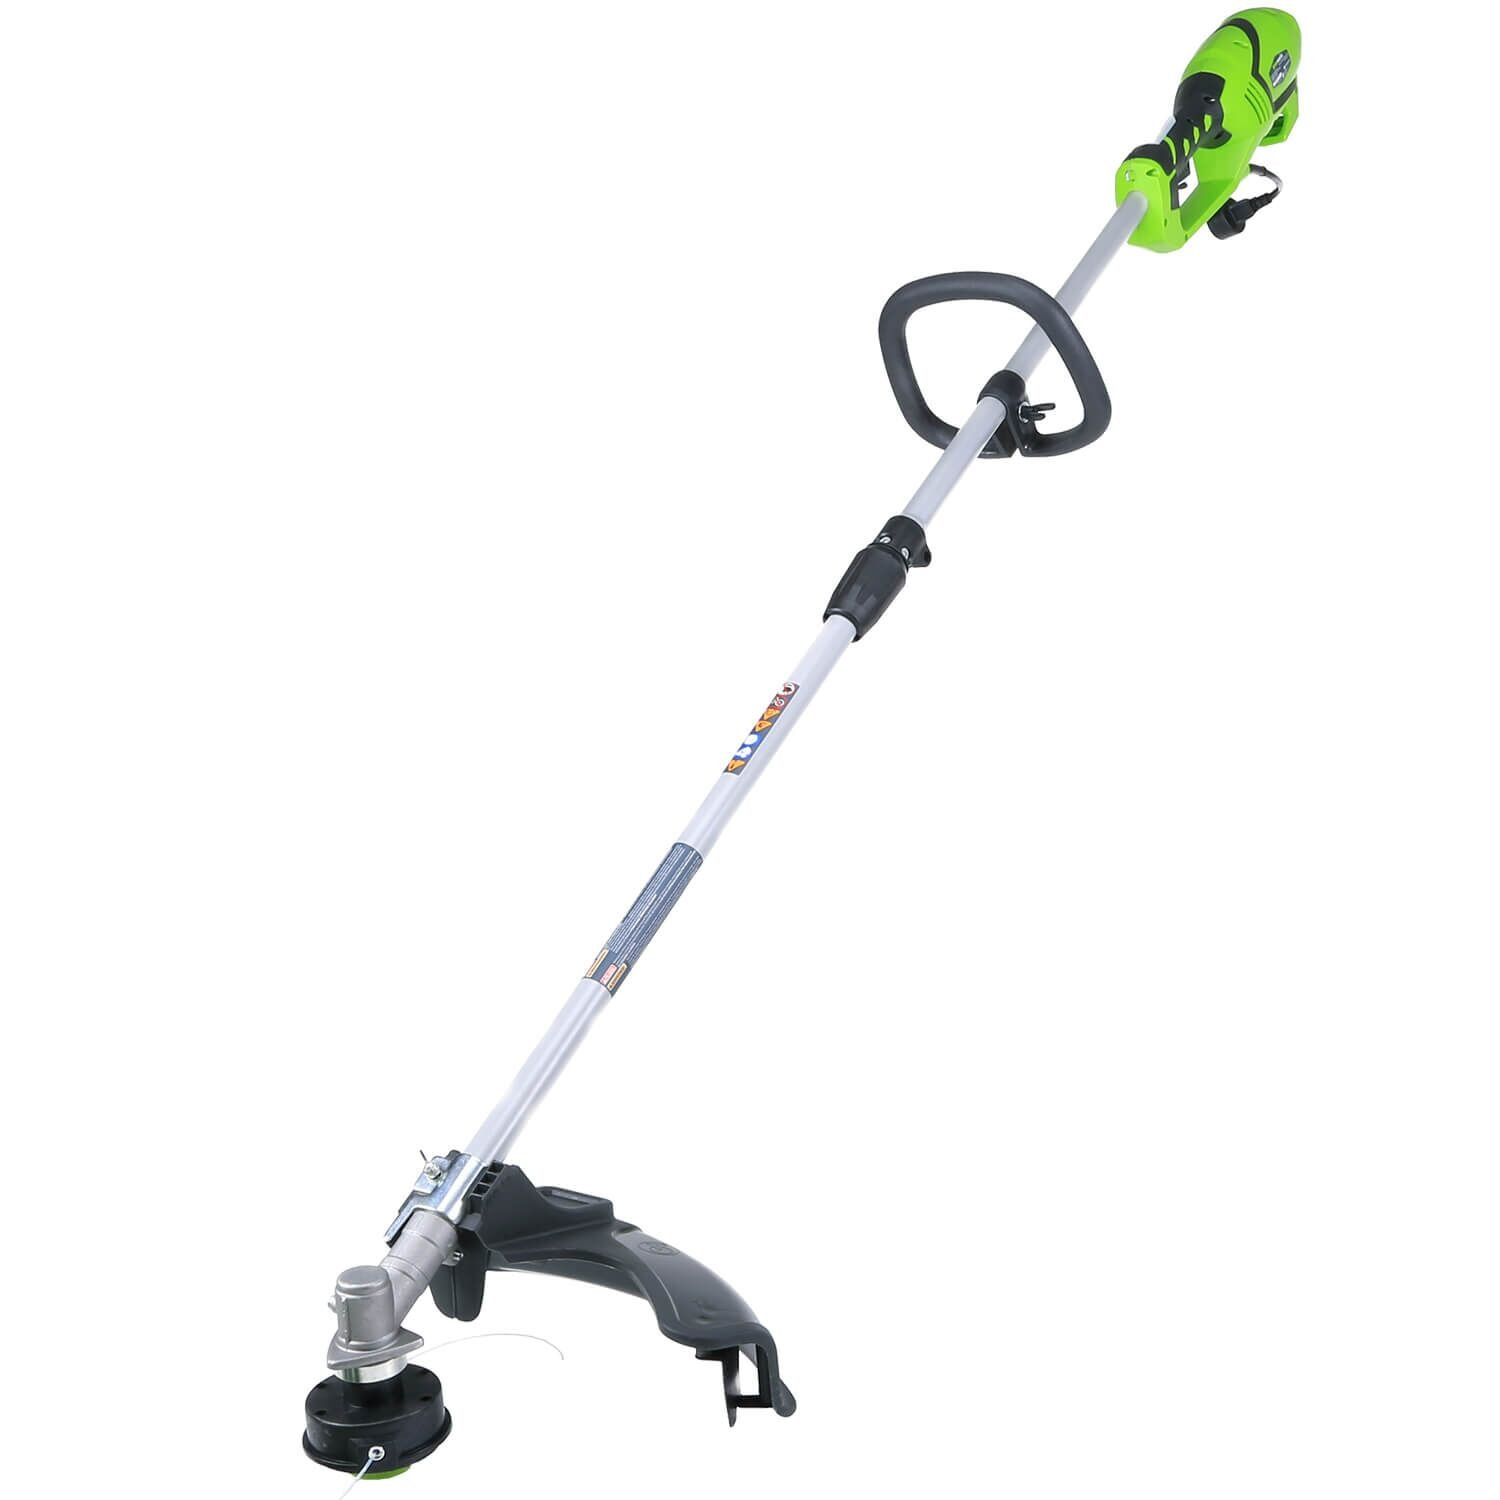 Greenworks 18-Inch 10 Amp Corded String Trimmer Attachment Capable 21142